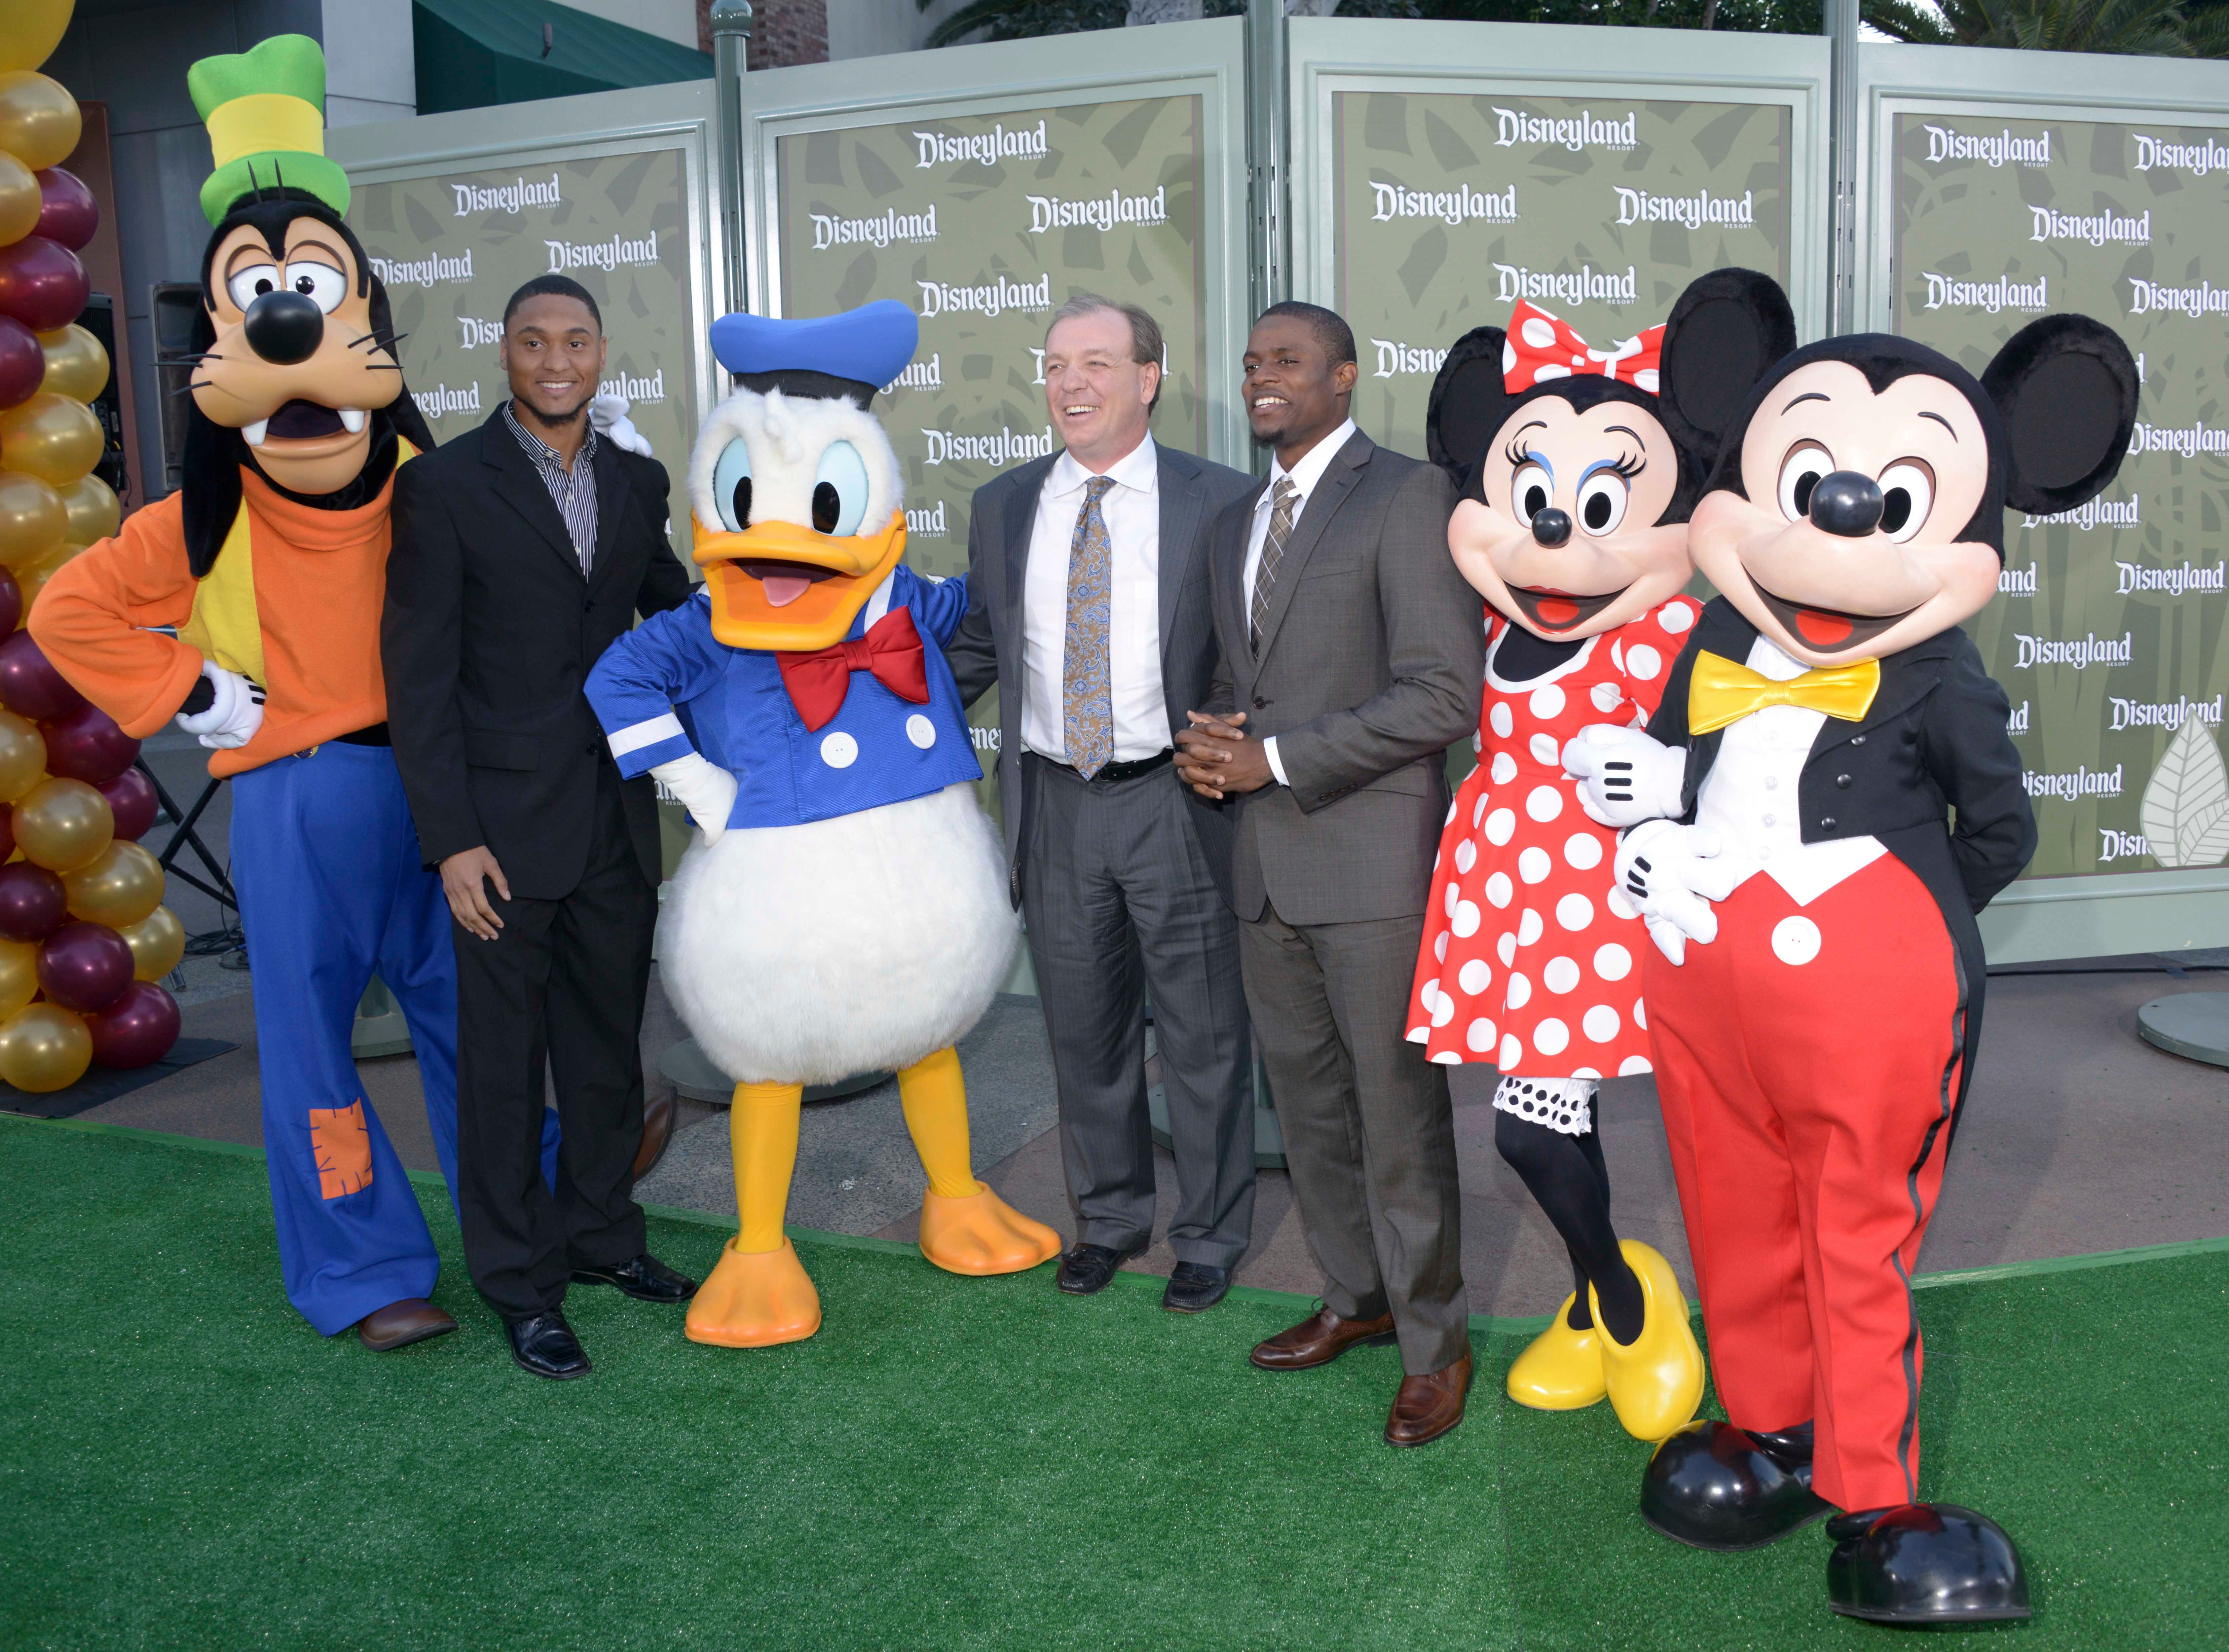 Dec 31, 2013; Anaheim, CA, USA; Florida State Seminoles players and coaches pose with Disney characters at a press conference for the 2014 BCS National Championship at ESPN Zone Downtown Disney. From left: Goofy and receiver Rashad Greene and Donald Duck and Jimbo Fisher and defensive back Lamarcus Joyner and Minnie Mouse and Mickey Mouse. Mandatory Credit: Kirby Lee-USA TODAY Sports